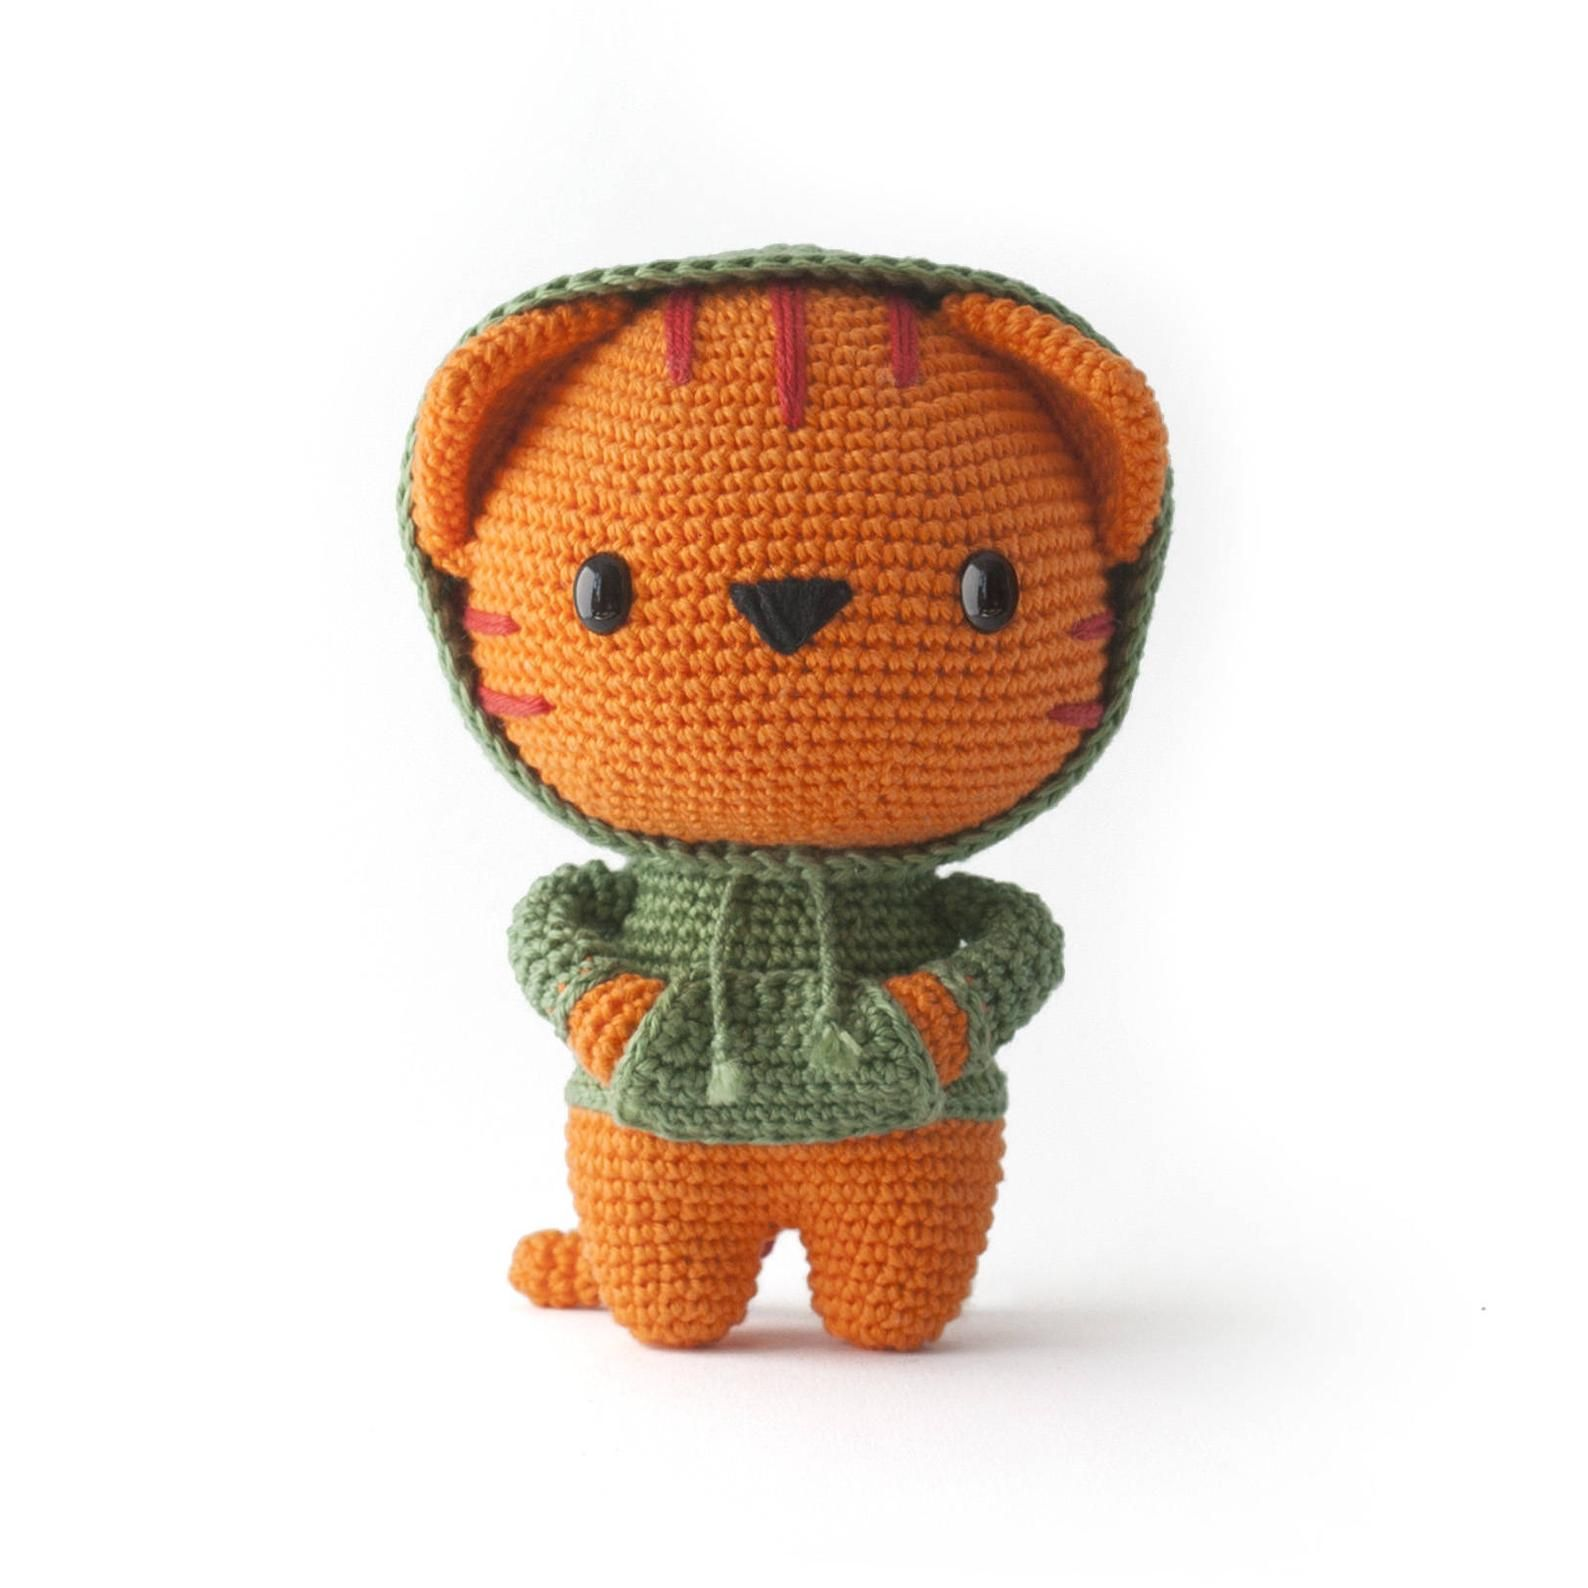 Milo the Hipster Cat Amigurumi pdf toy crochet pattern - DIY Fluffies #dogcrochetedsweaters